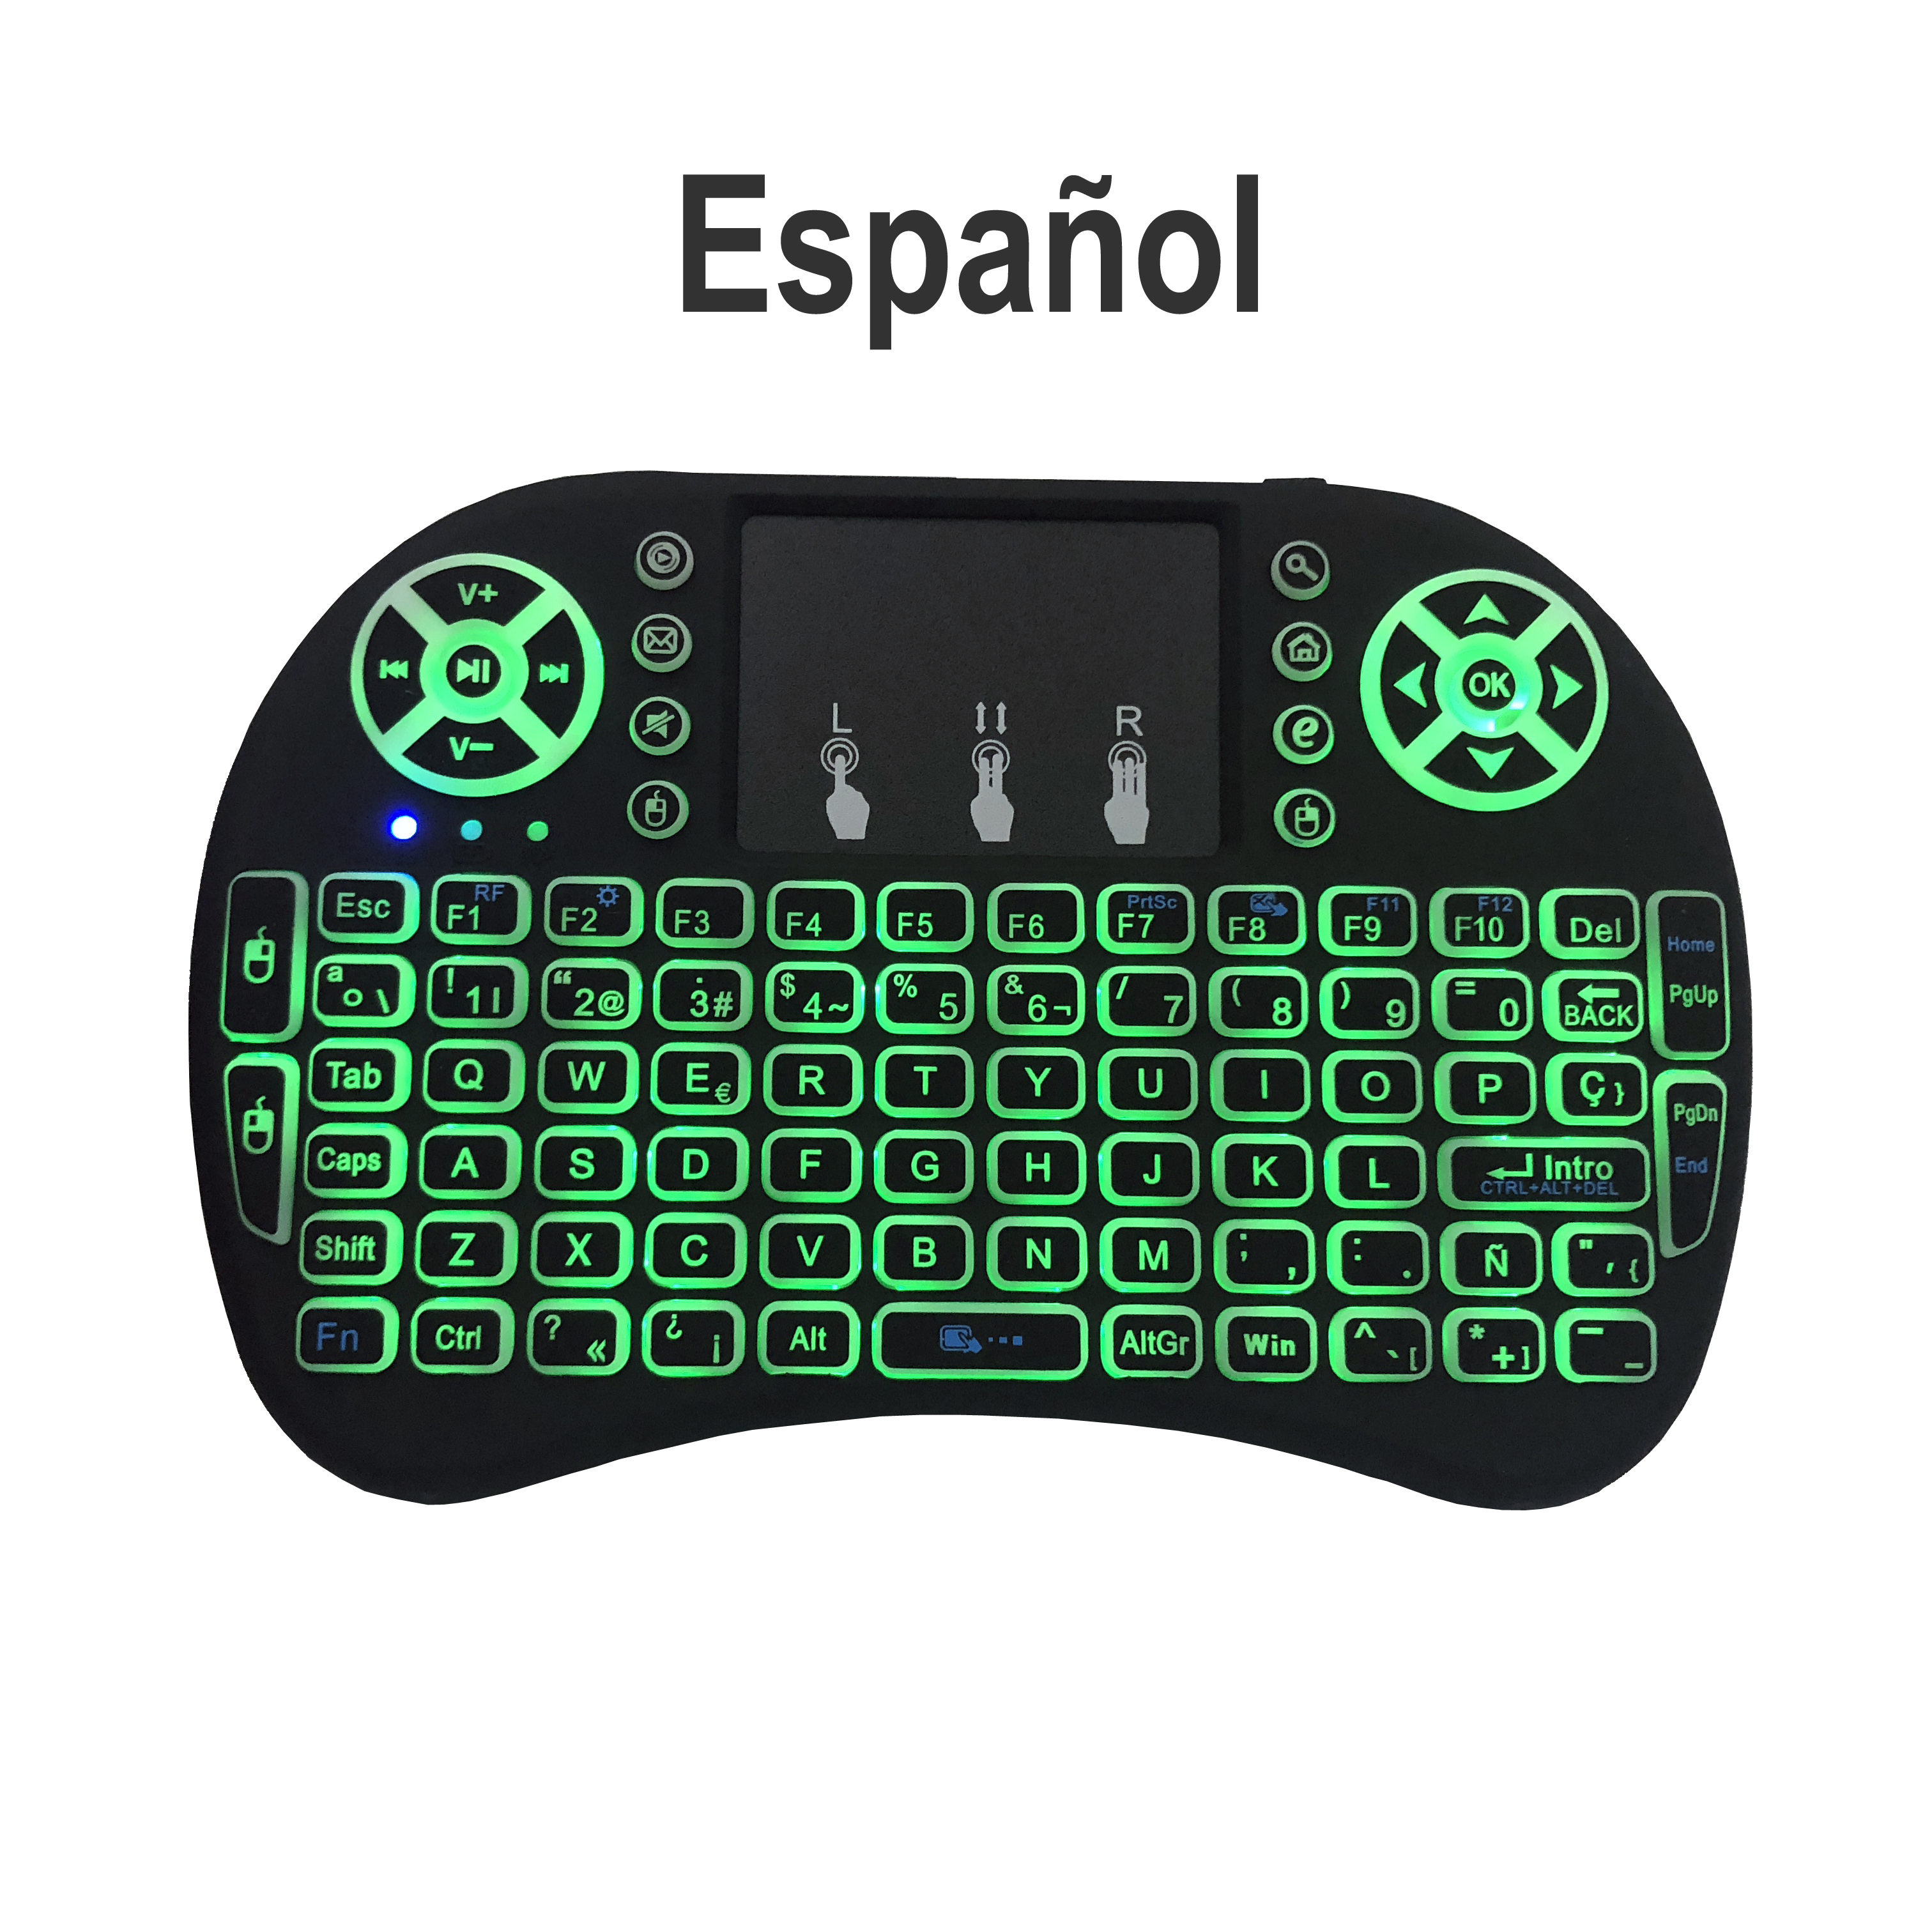 Spanish i8 mini keyboard 3 color backlit i8+ lithium battery backlight Air Mouse Remote Control Touchpad Handheld TV BOX Laptop-in Keyboards from Computer & Office